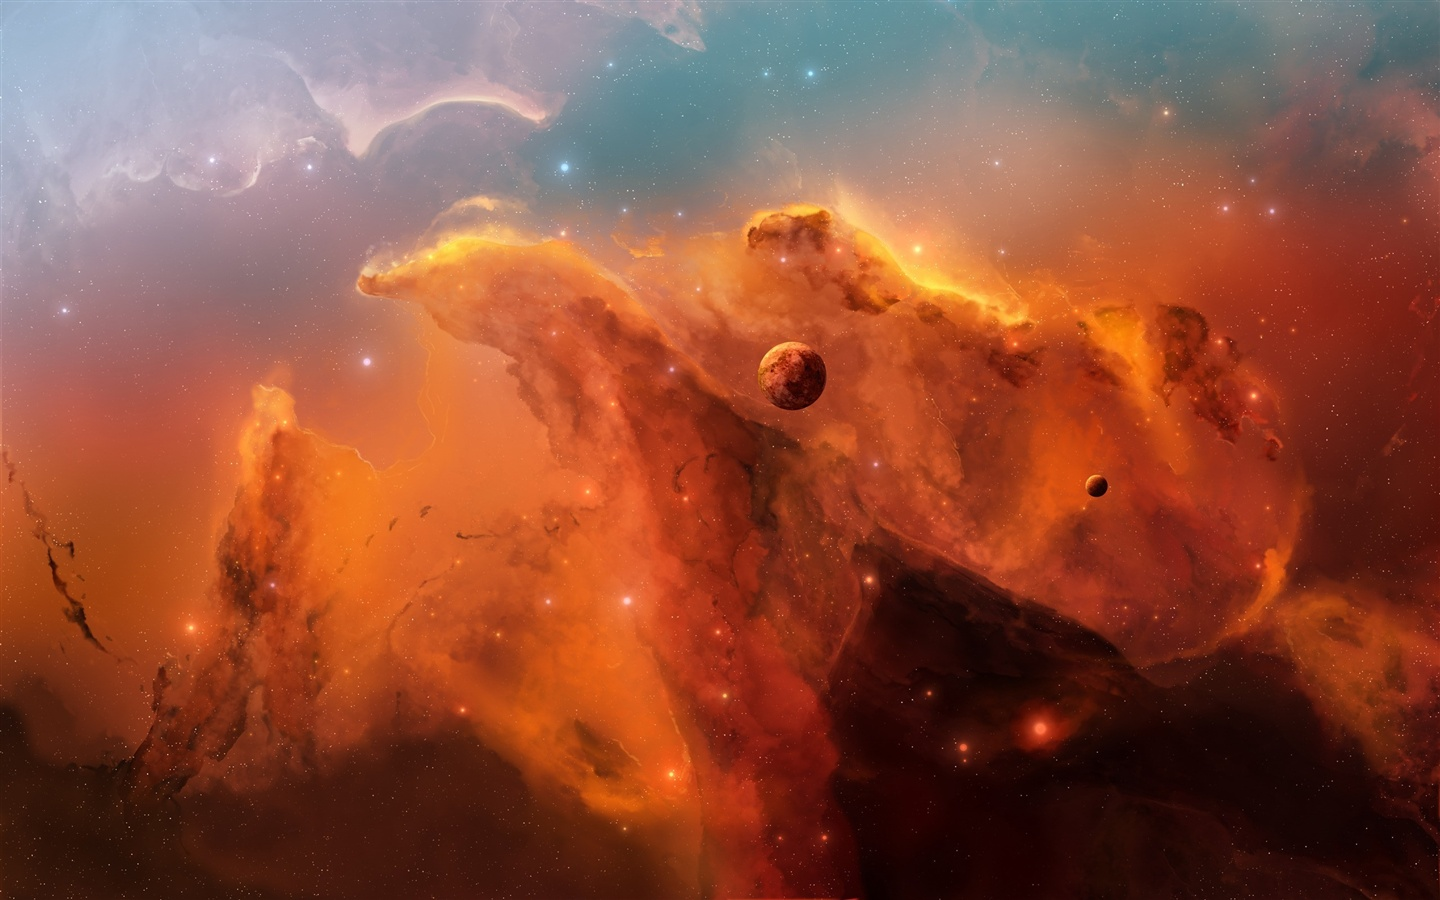 The red nebula in space wallpaper - 1440x900